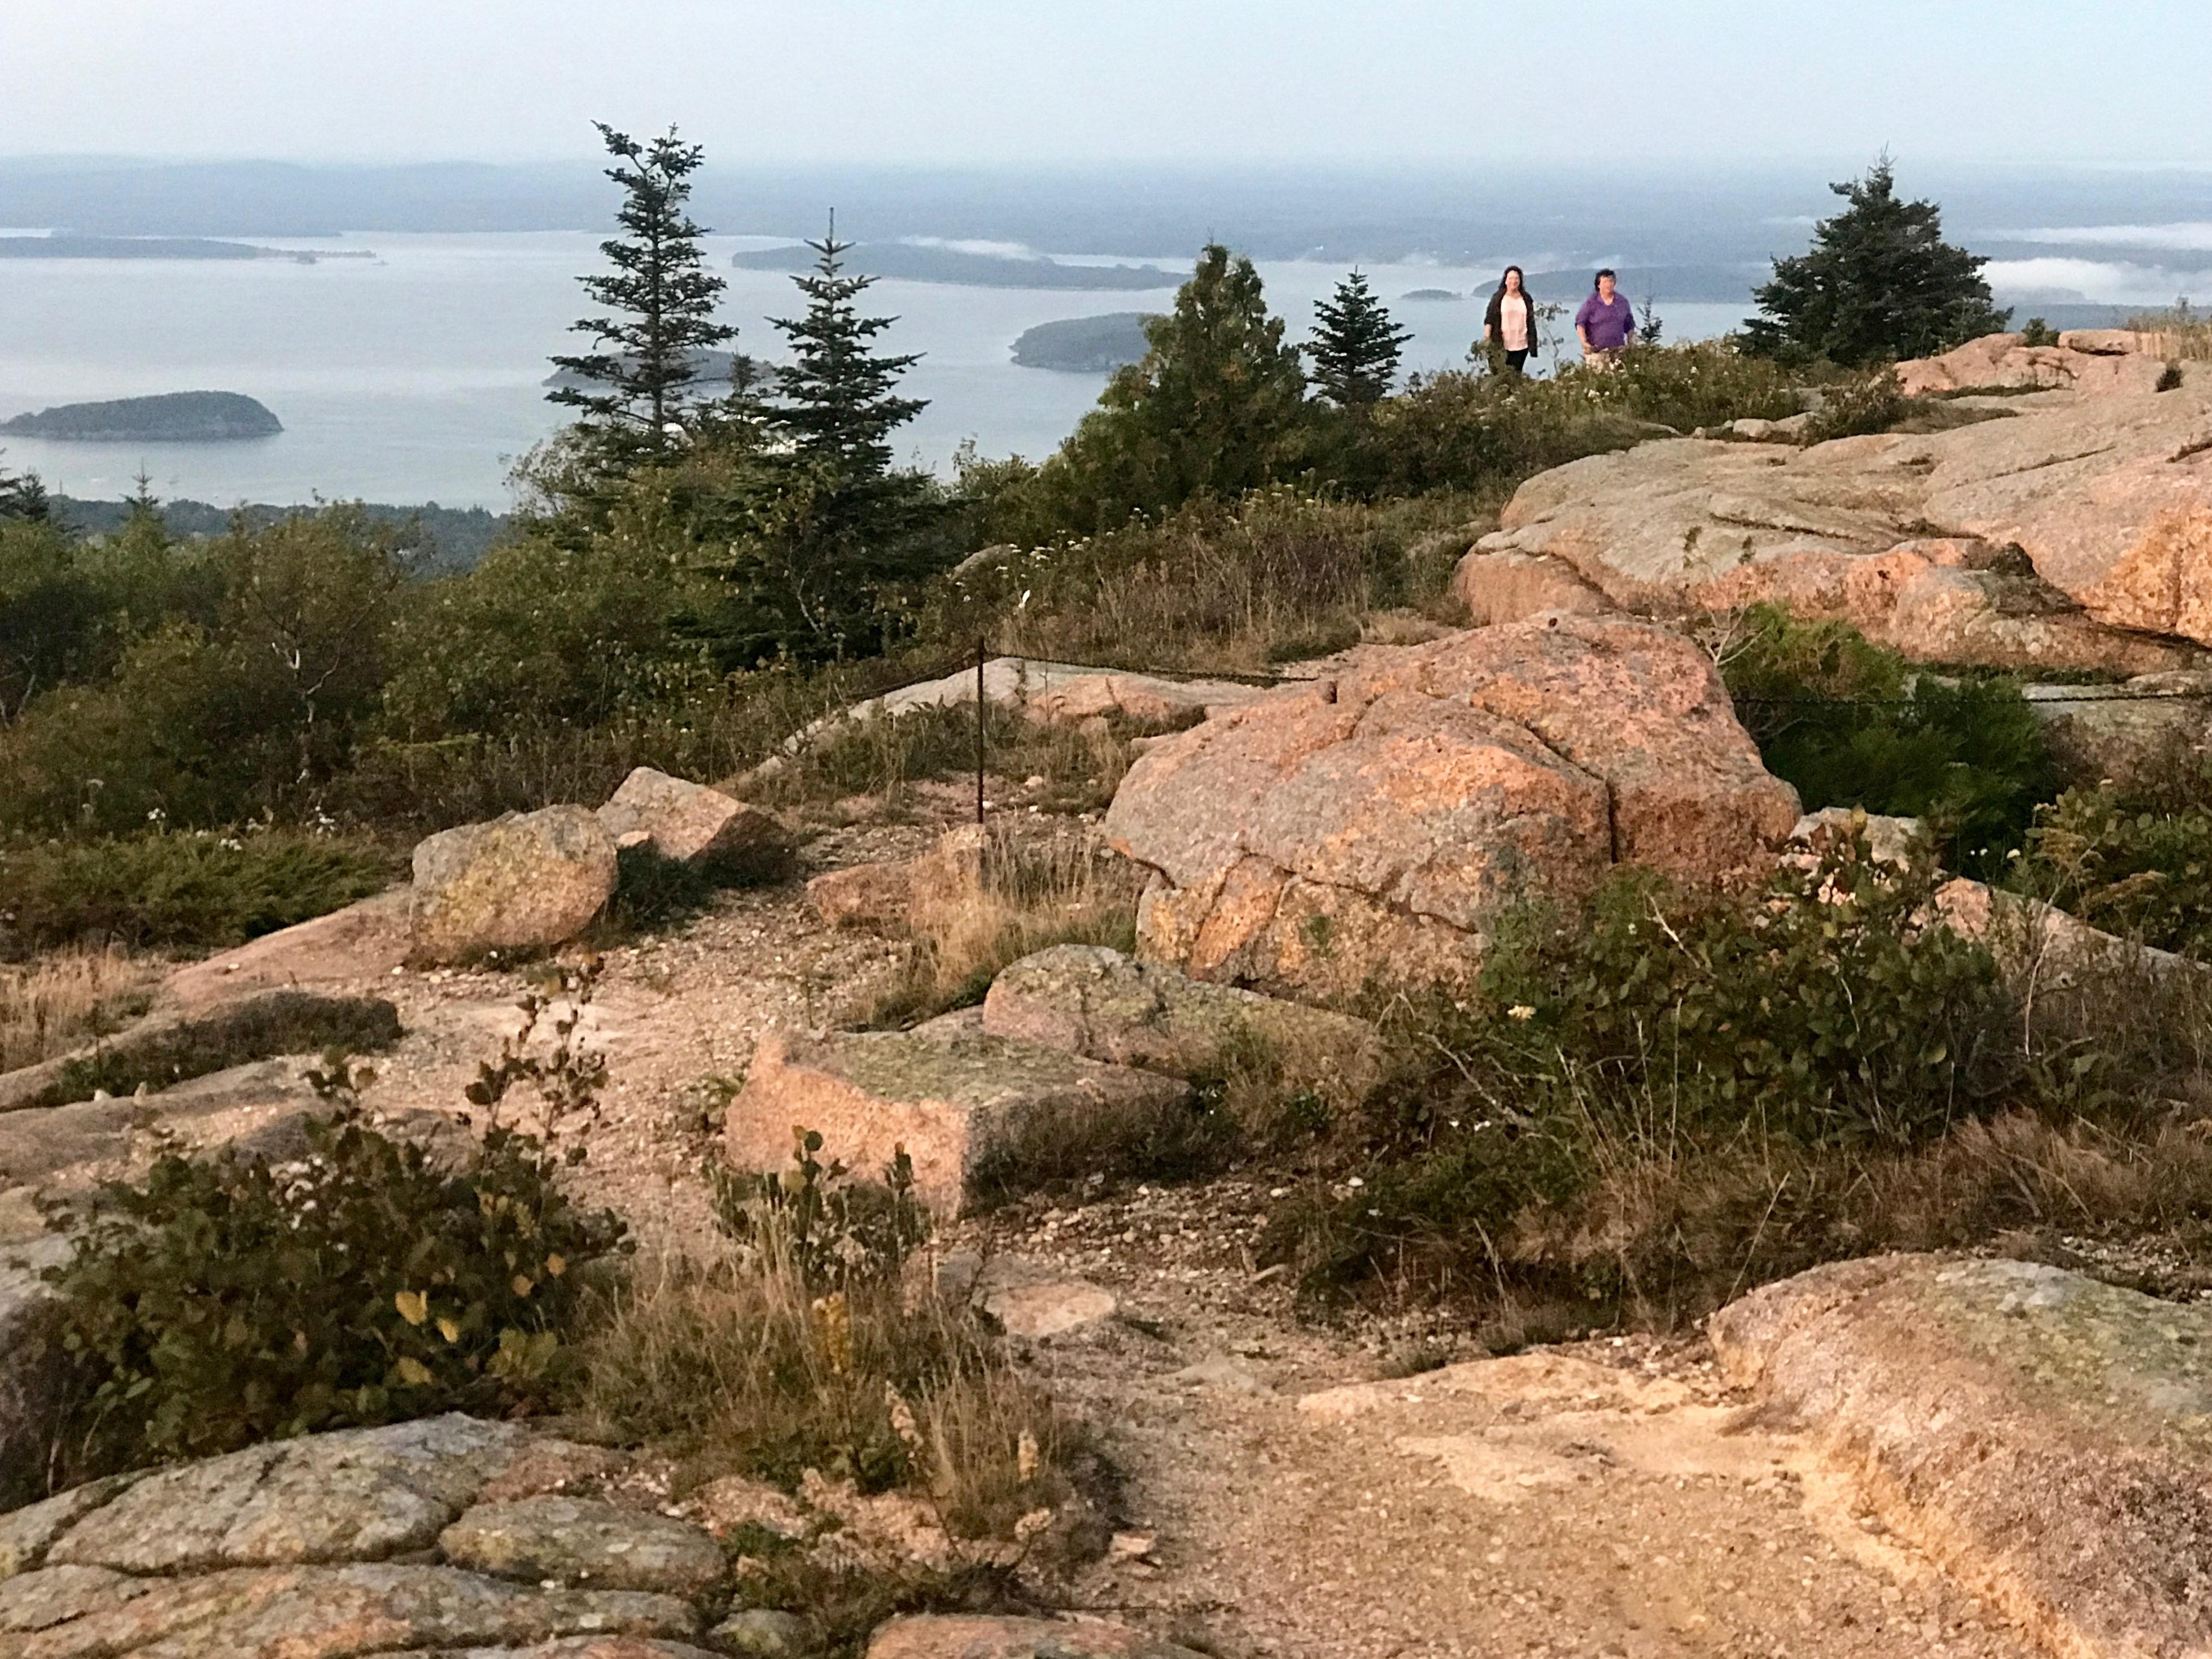 Tourists have an easy drive to the top of Cadillac Mountain, the highest point in Acadia National Park, though finding a place to park can be difficult. [Photo by Rick Holmes]